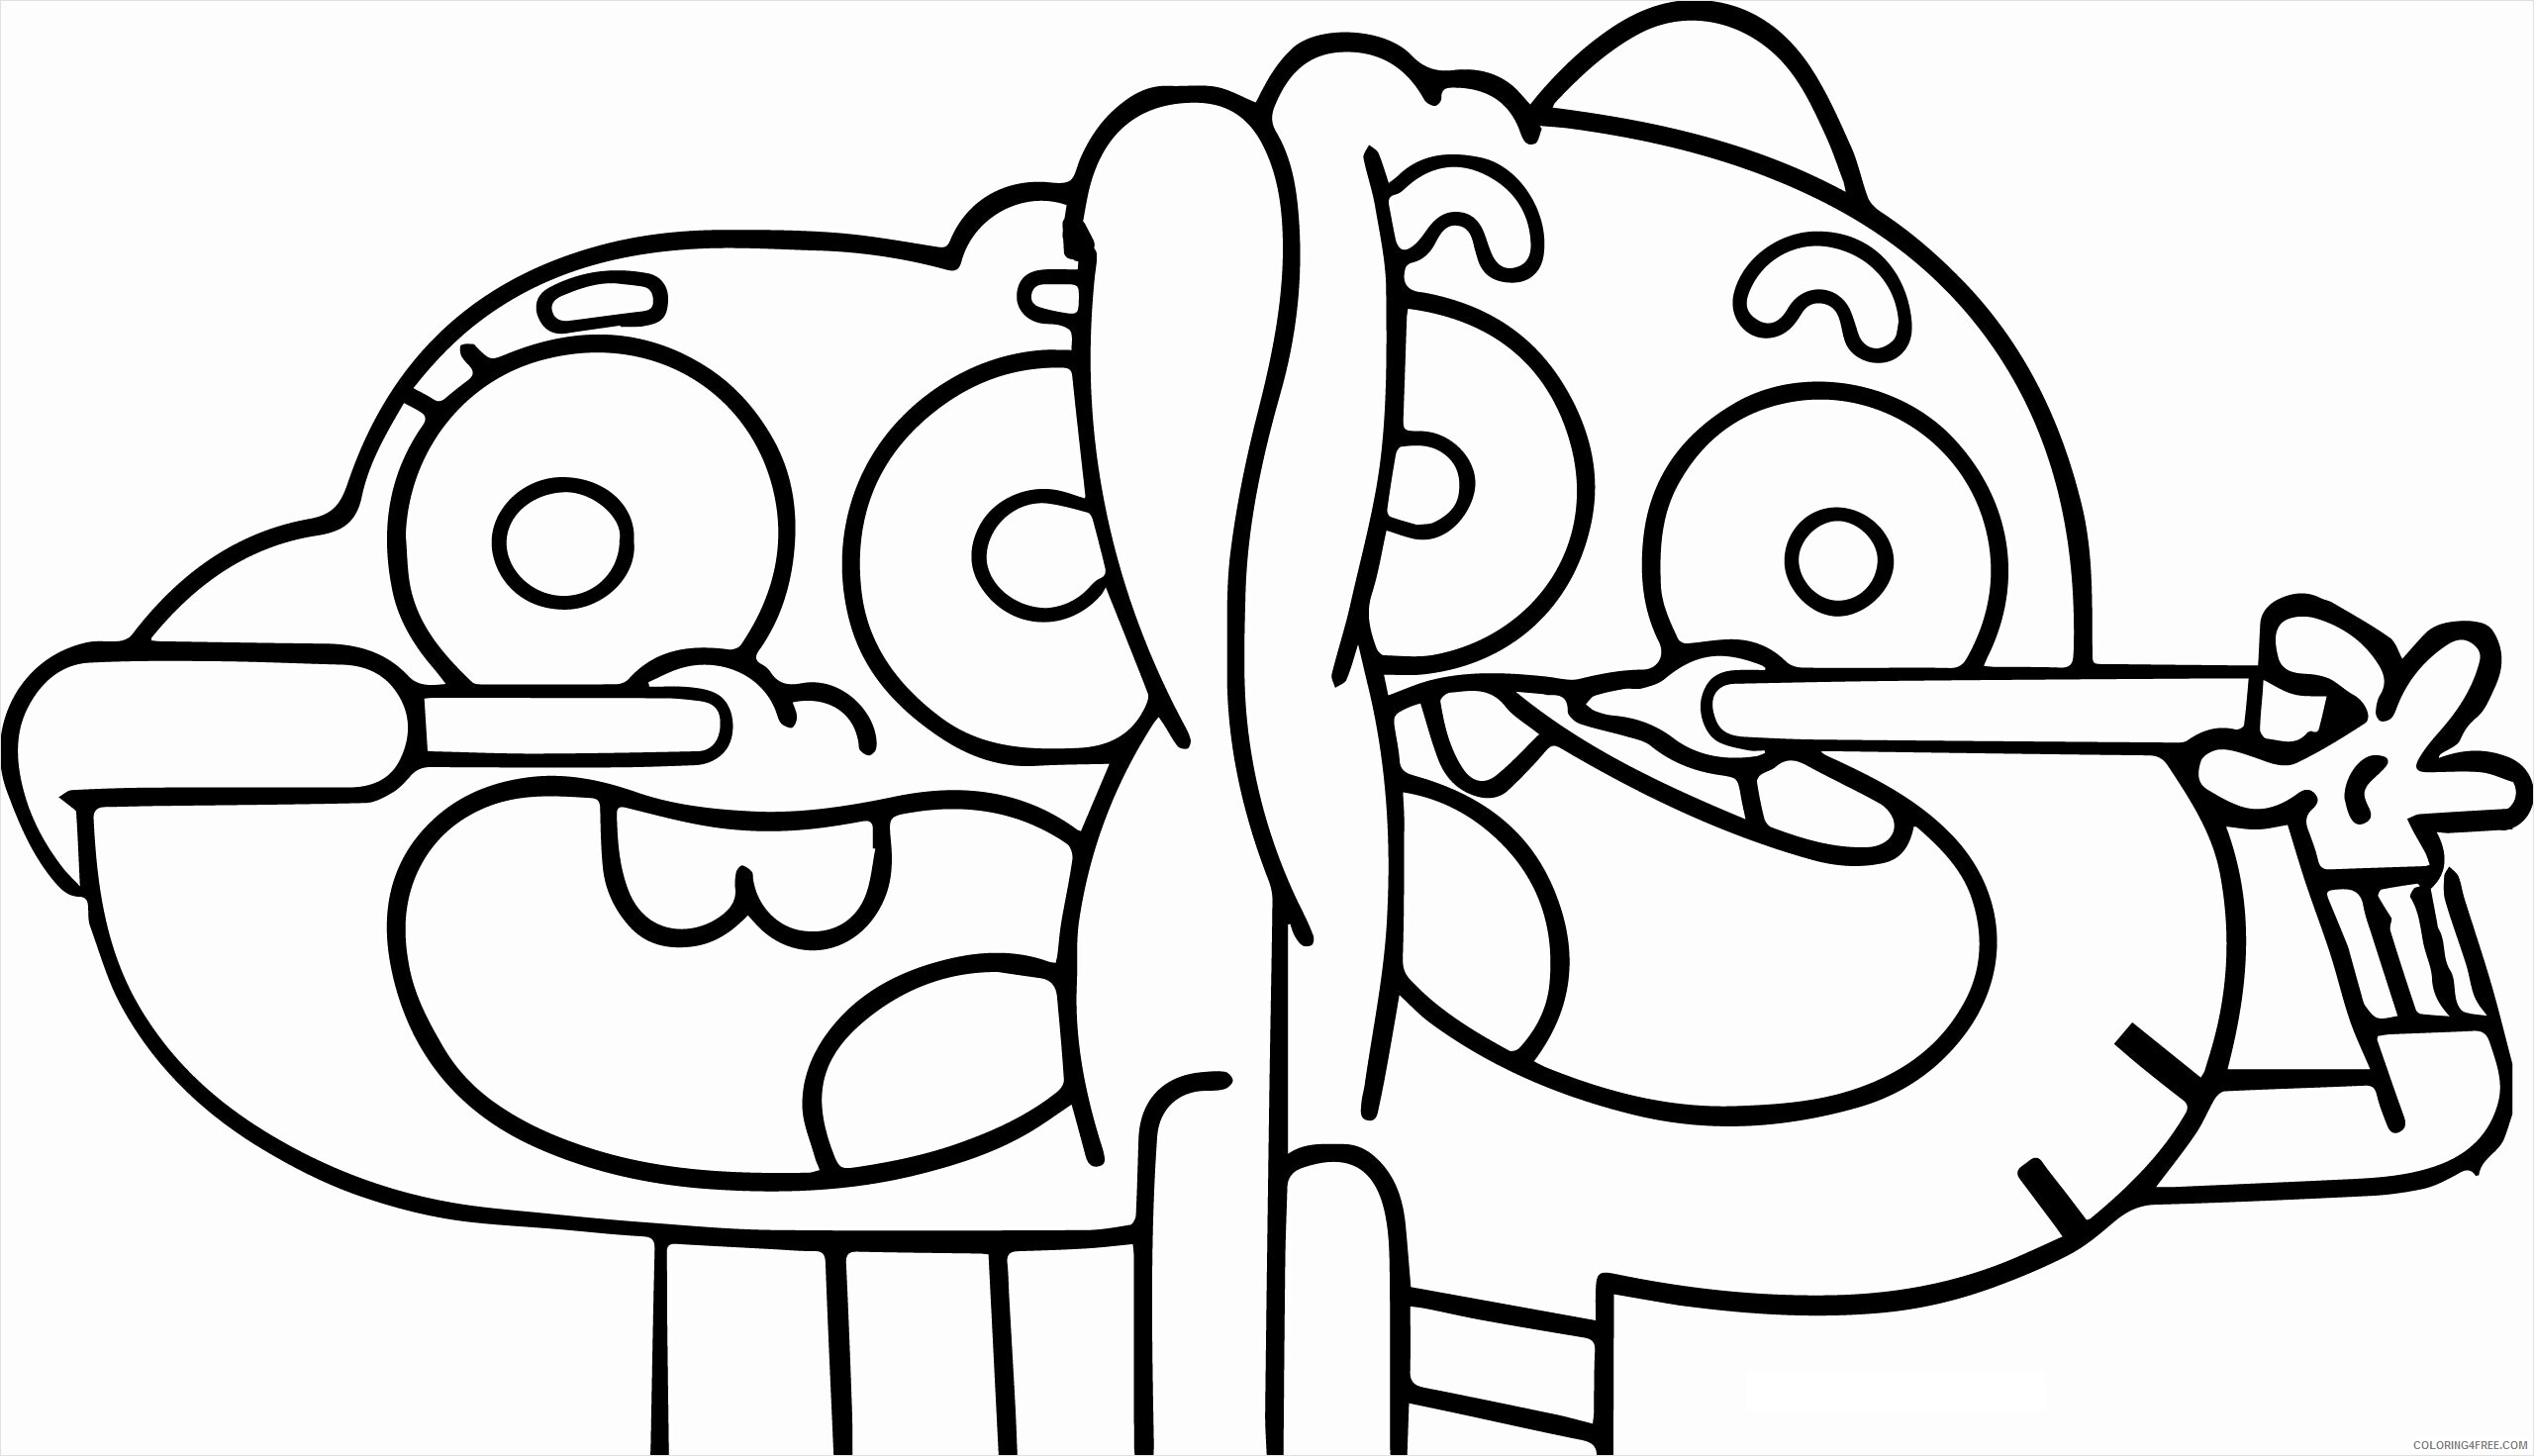 https coloring4free com the amazing world of gumball coloring pages tv film loathsomeness 2020 05 coloring4free